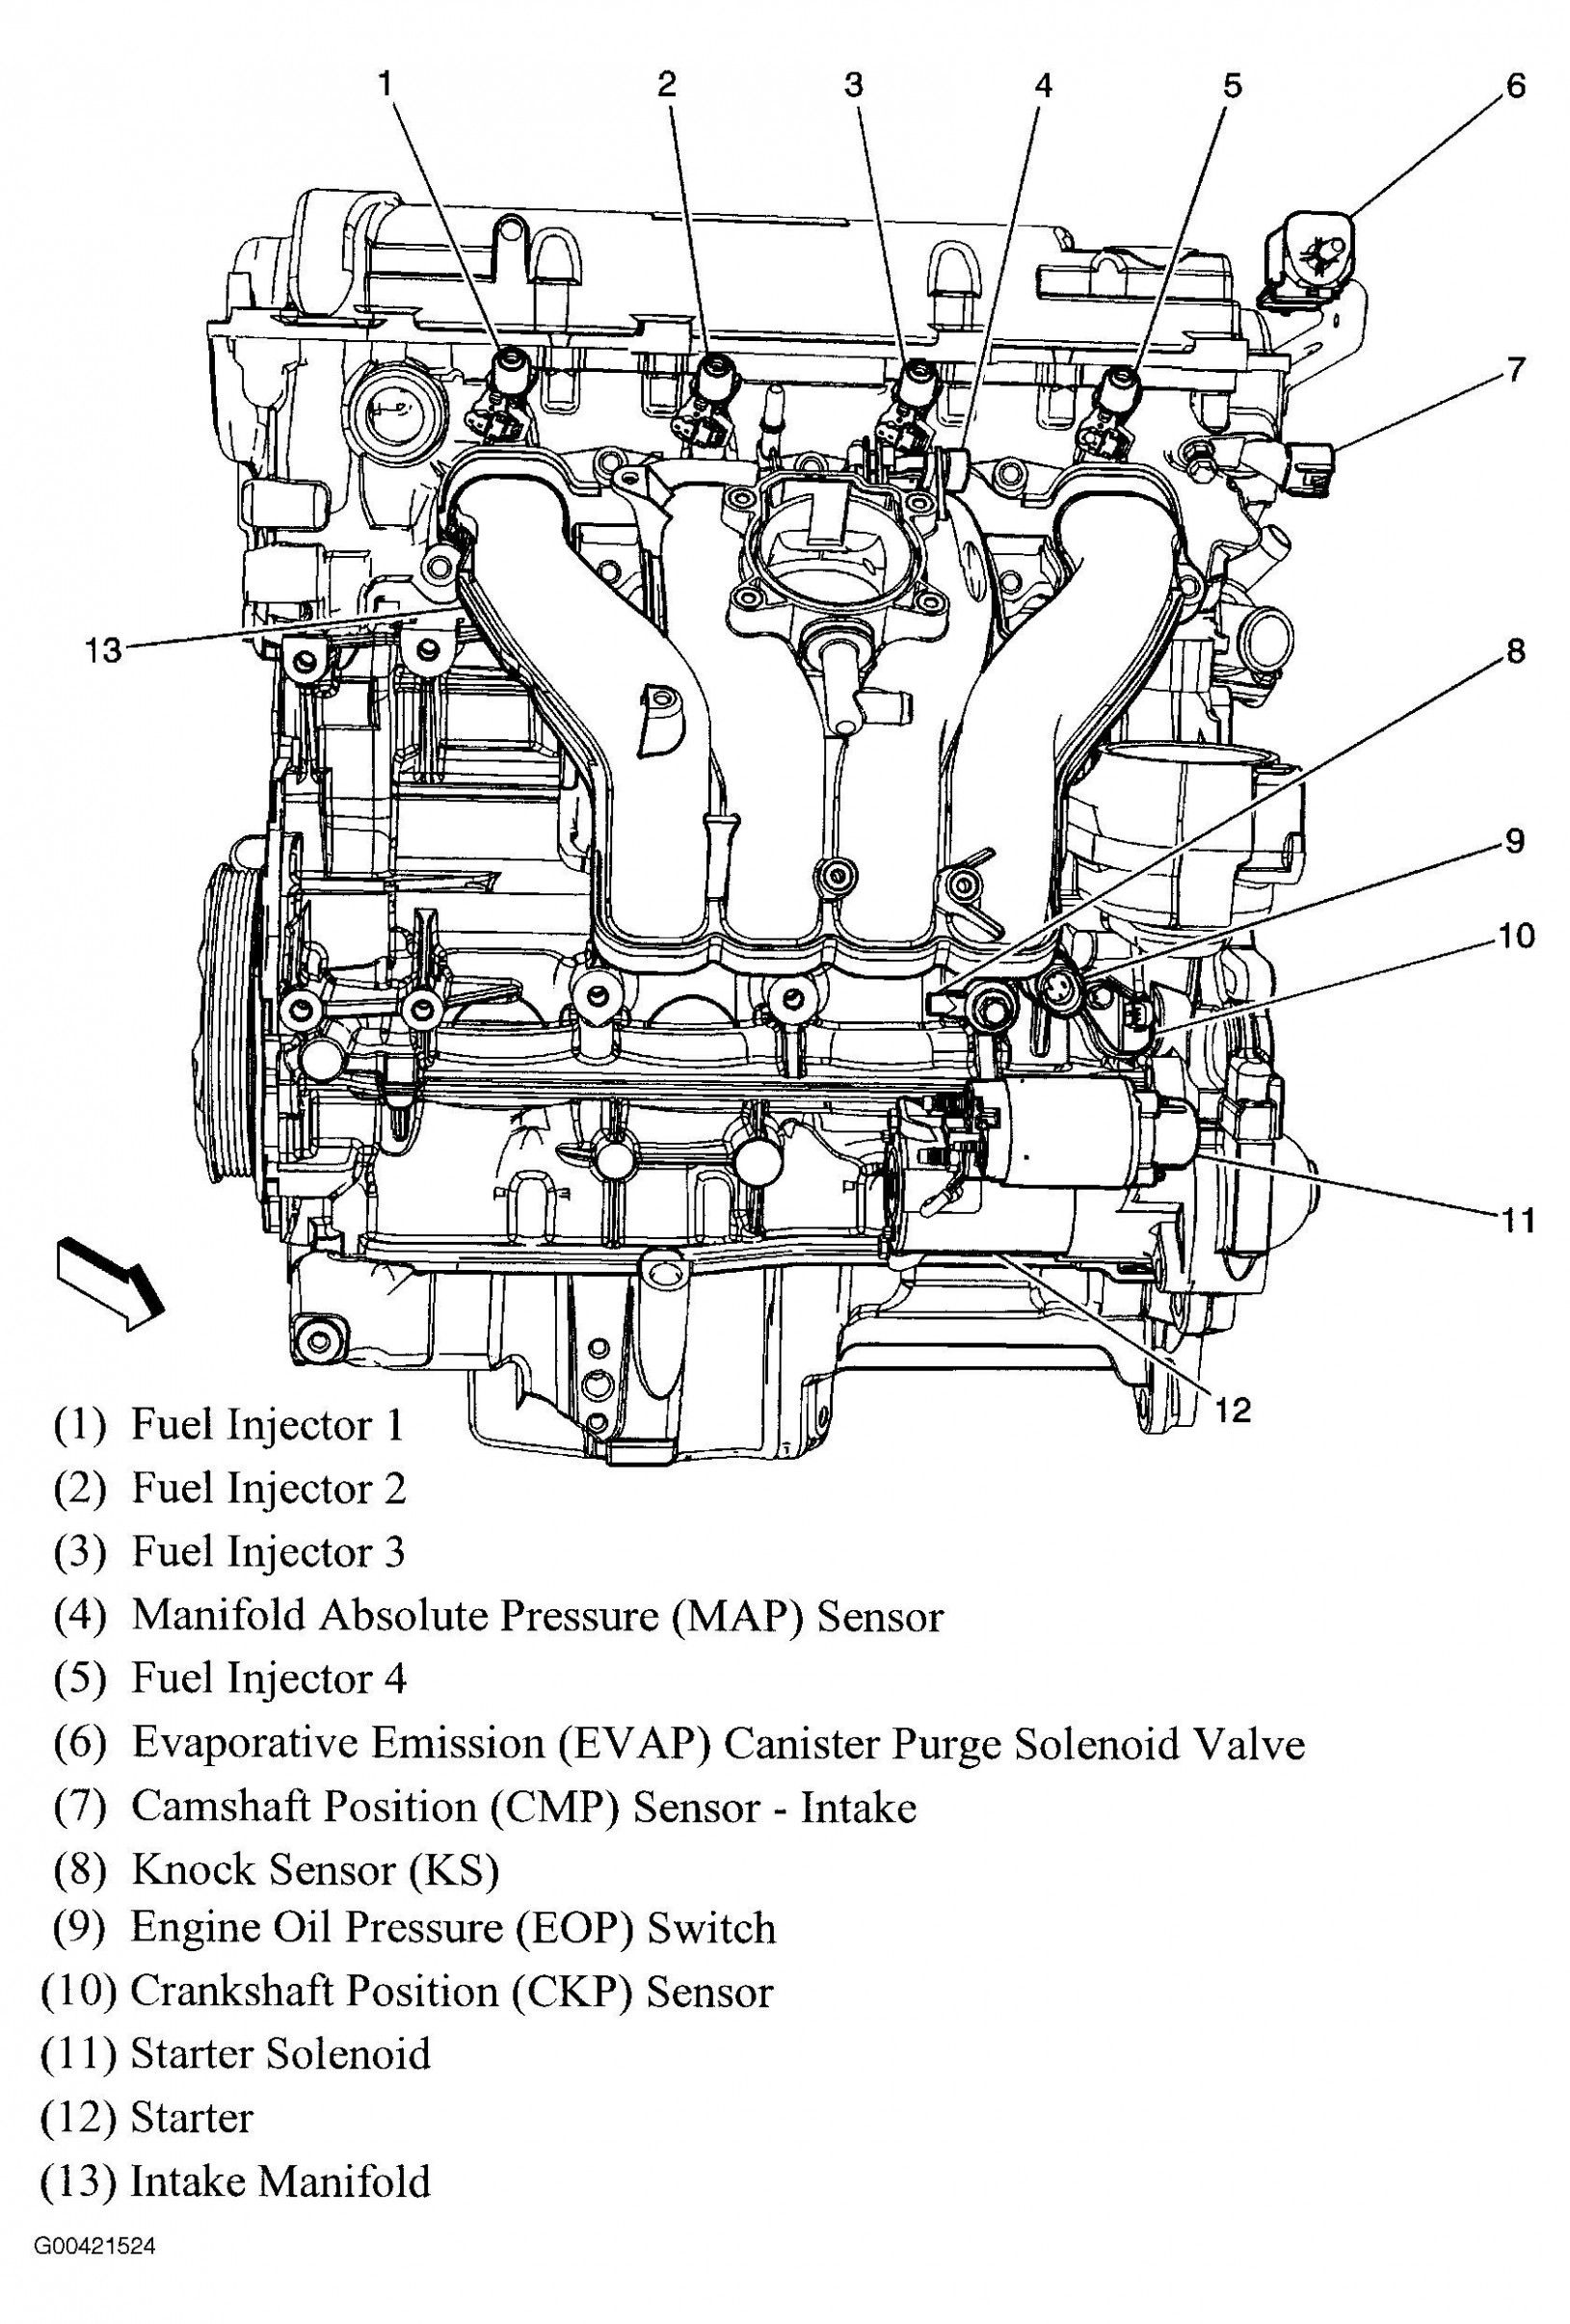 Subaru Ej5 Engine Diagram Subaru Ej5 Engine Diagram